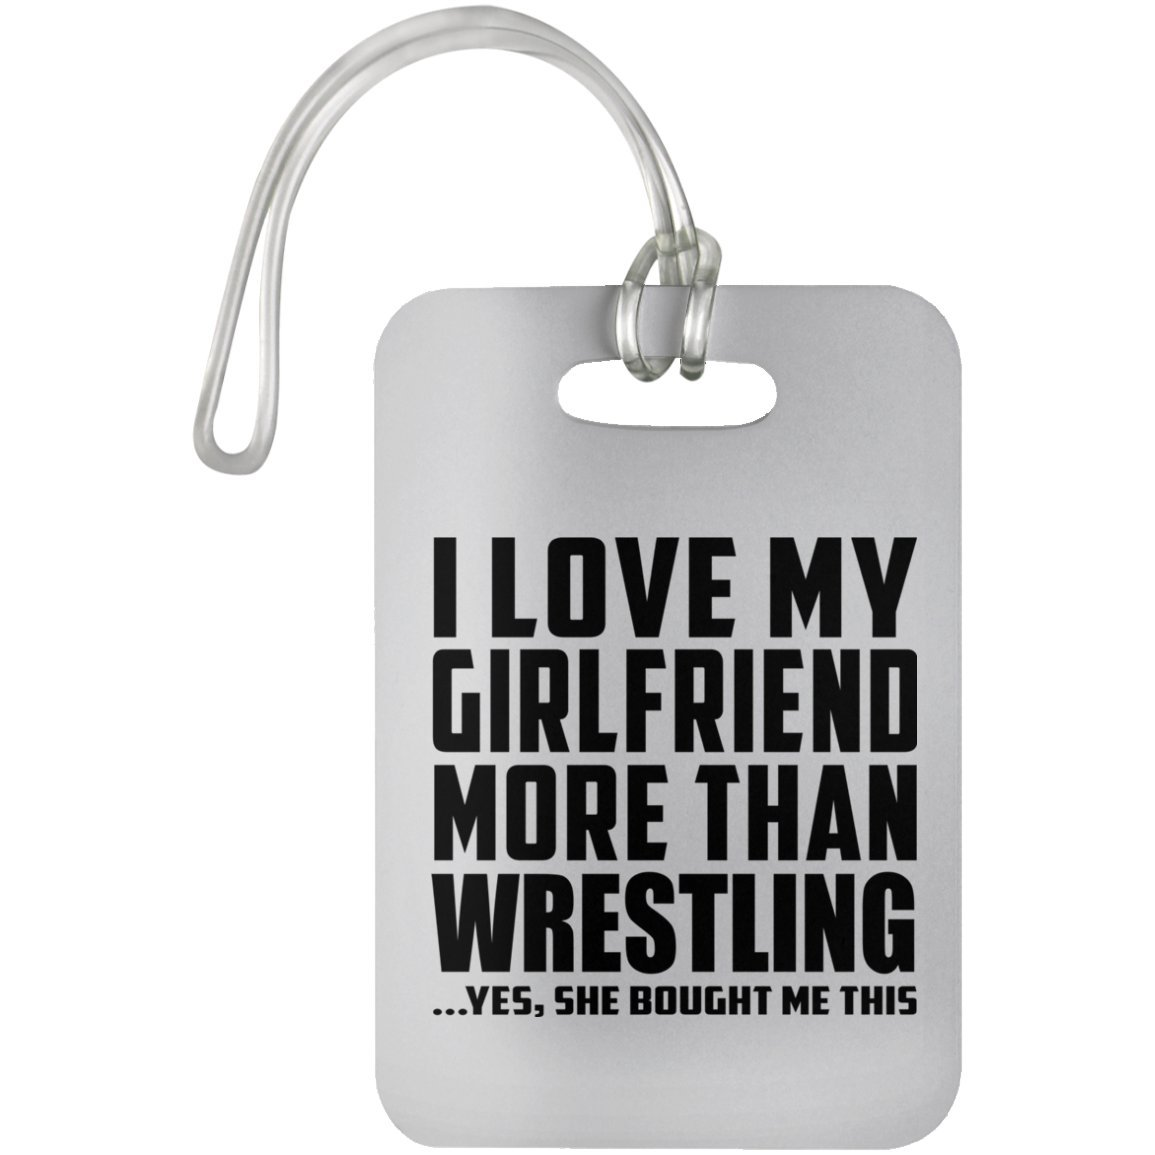 I Love My Girlfriend More Than Wrestling .She Bought Me This - Luggage Tag, Suitcase Bag ID Tag